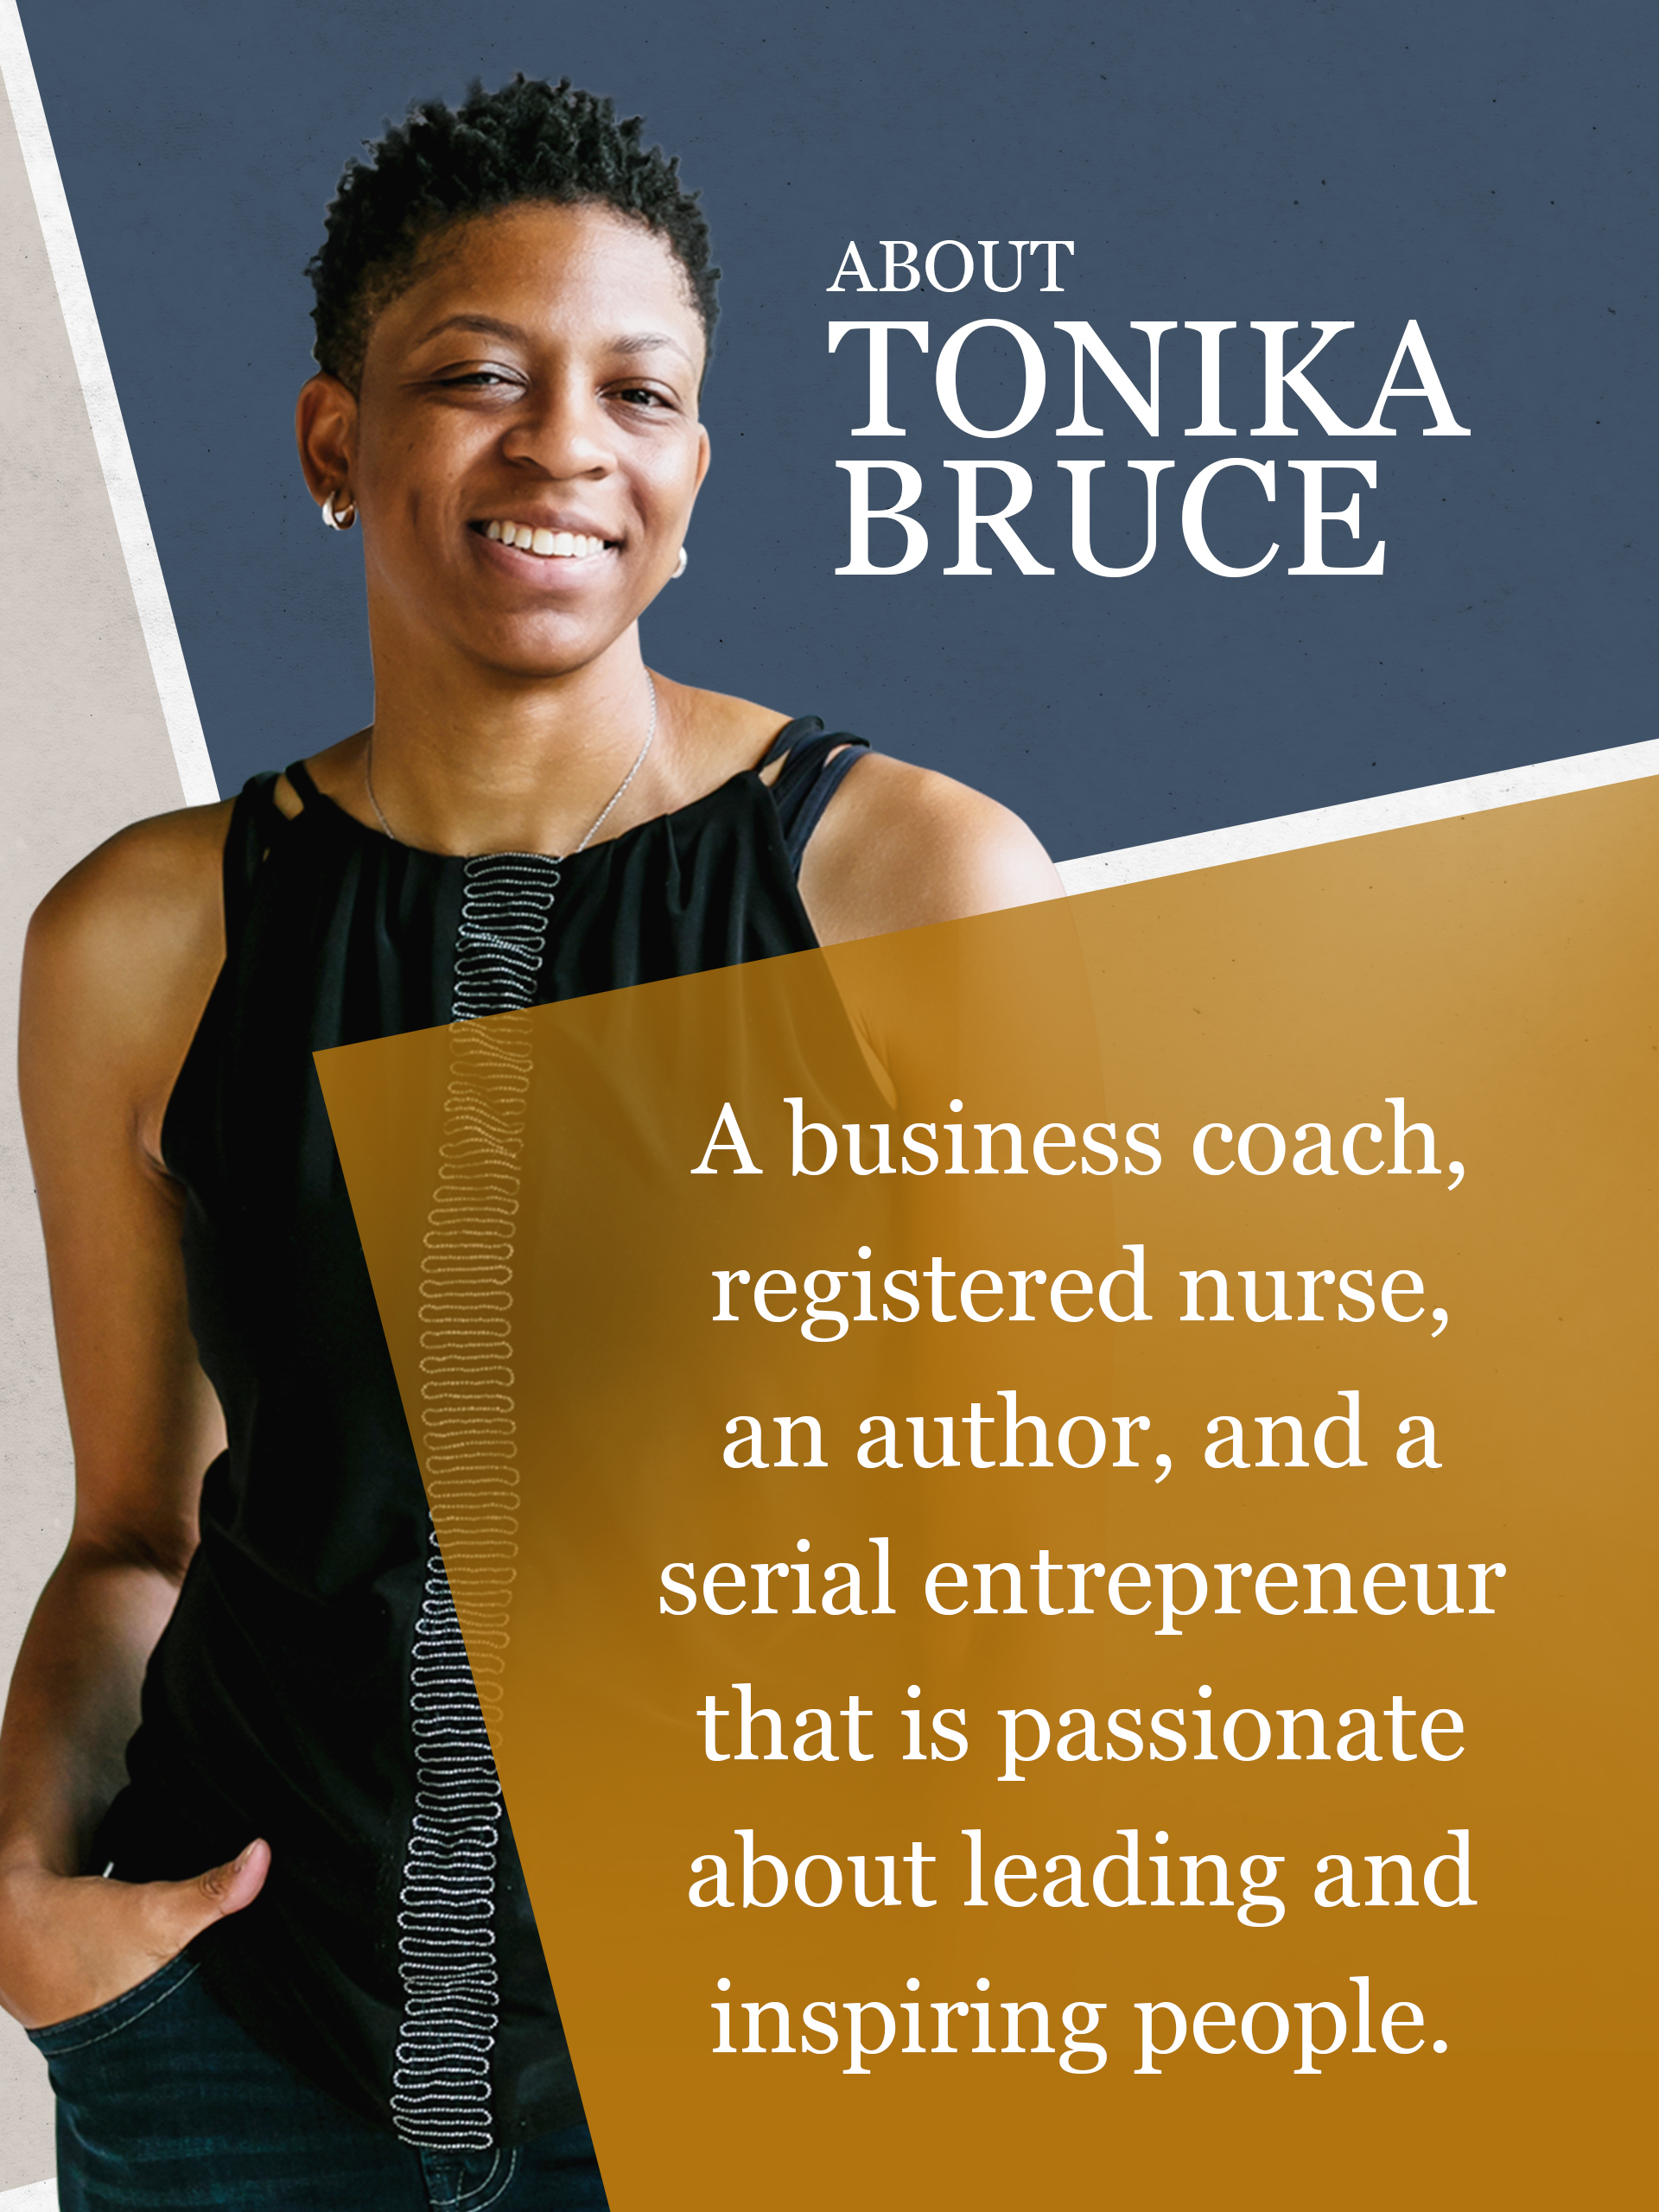 Who is Tonika Bruce